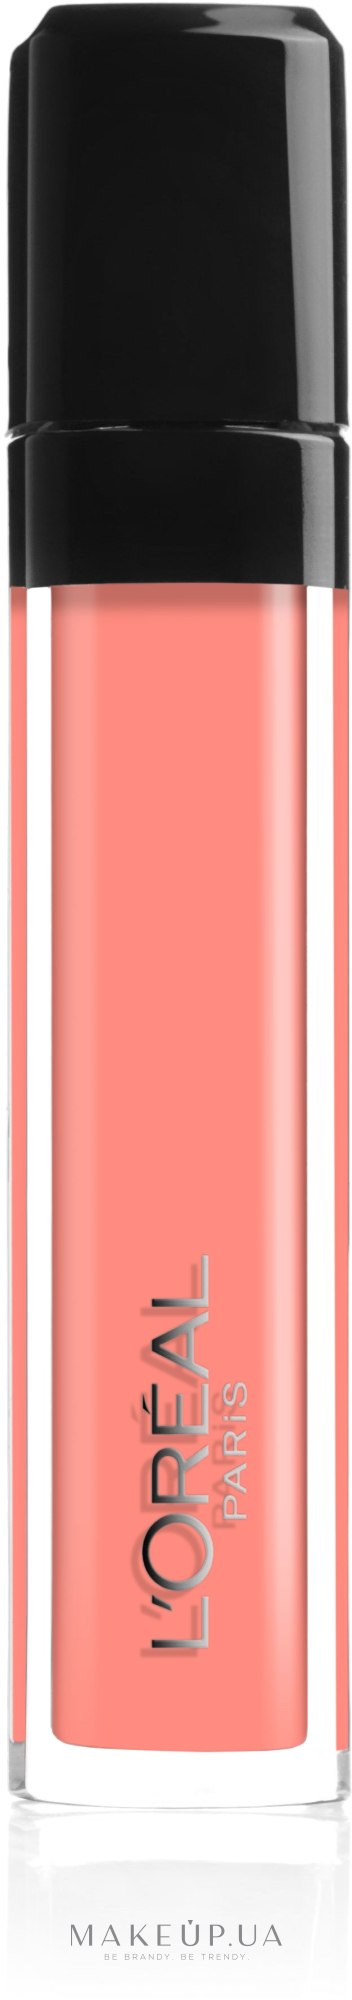 Блеск для губ - L'Oreal Paris Infallible Mega Gloss — фото 101 - Girl on Top Cream